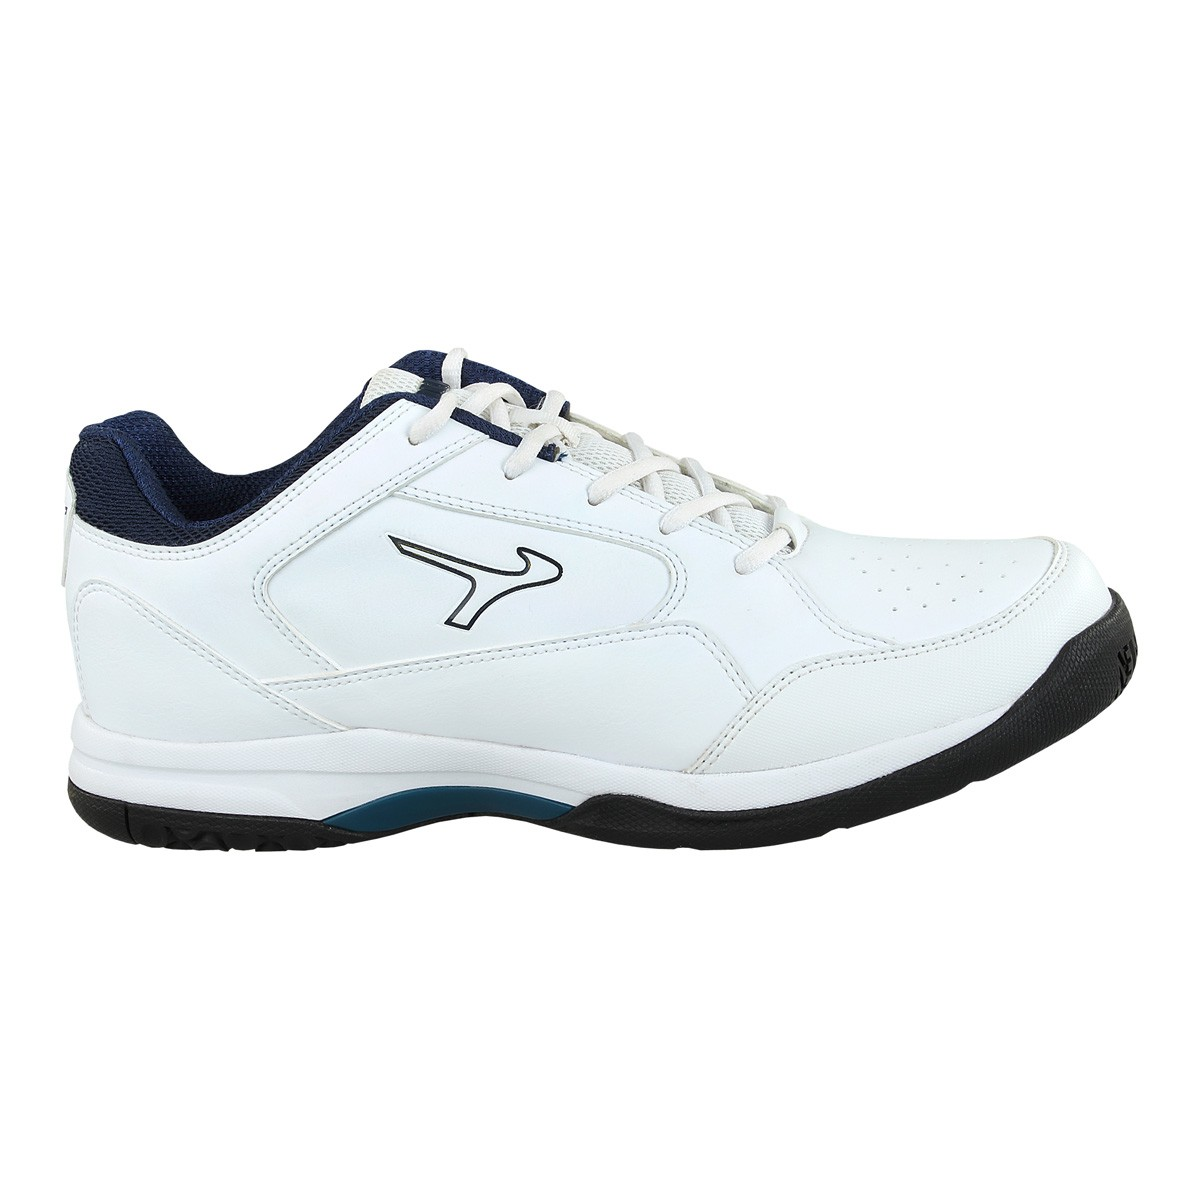 Touch-957-White/Navy